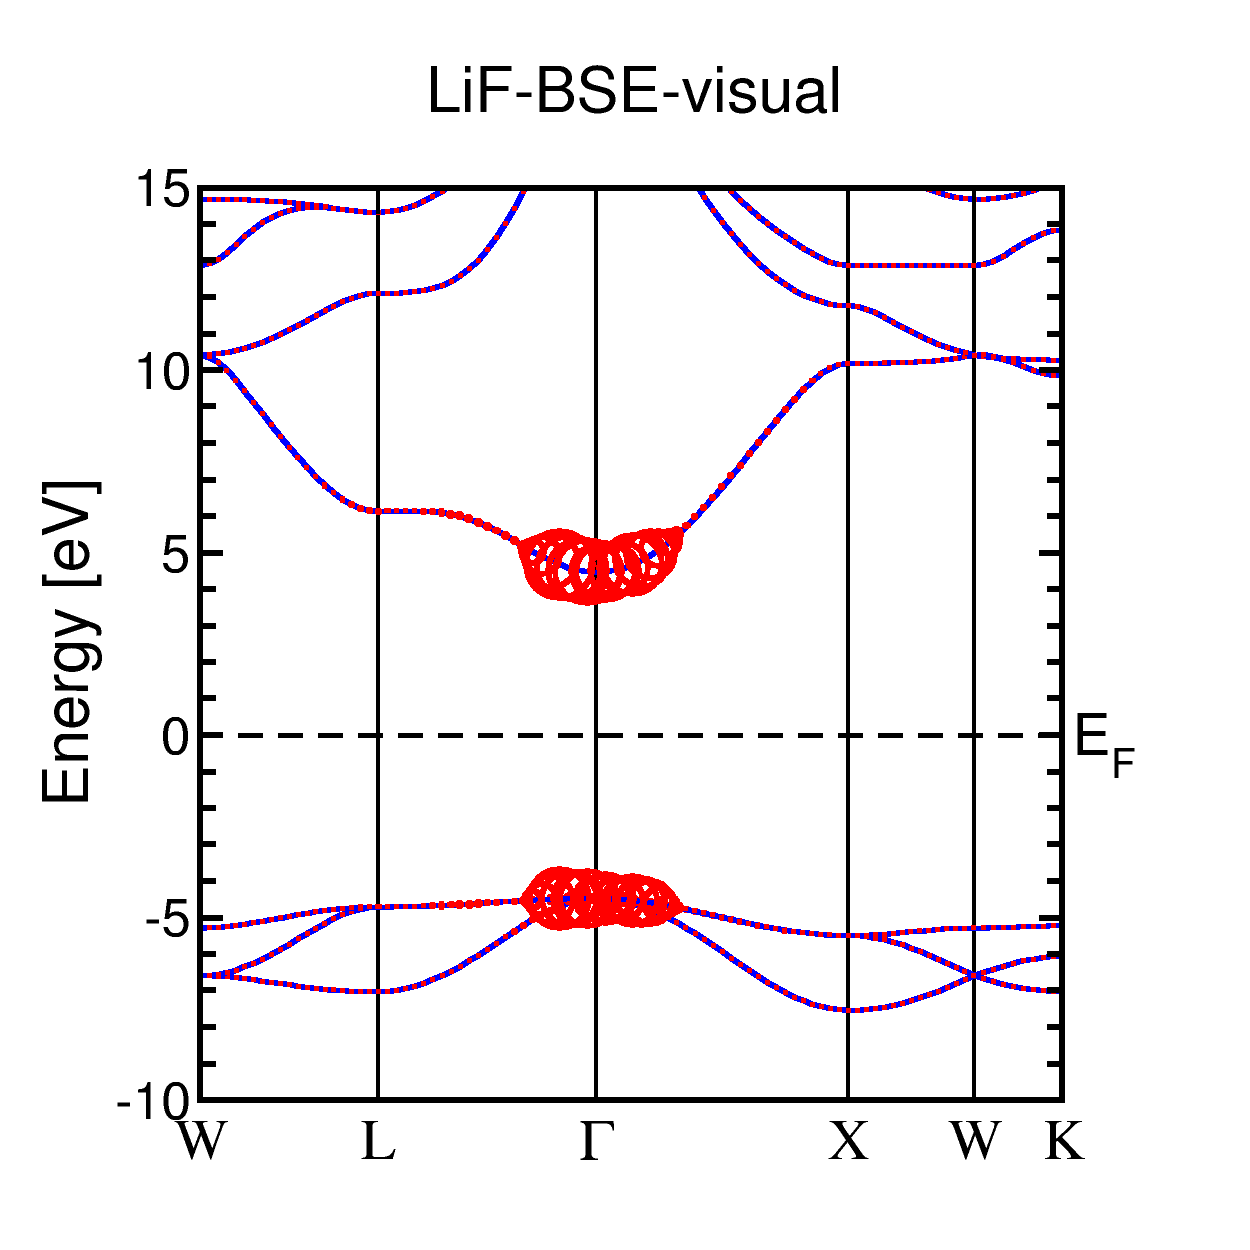 LiF-BSE-visual_bandstructure_exciton_0001.png